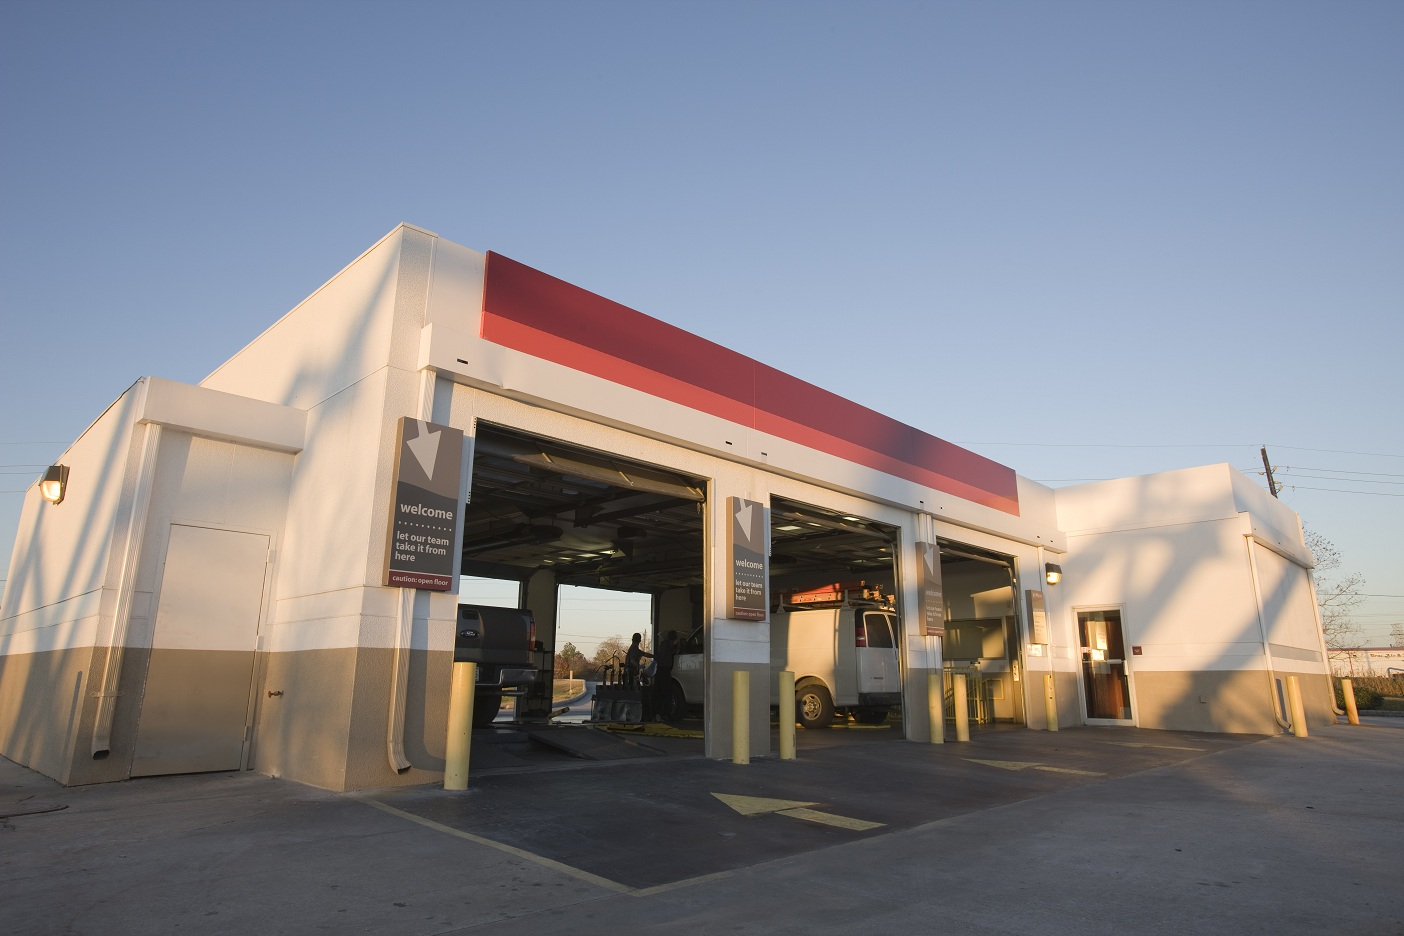 Jiffy Lube in La Canada, CA